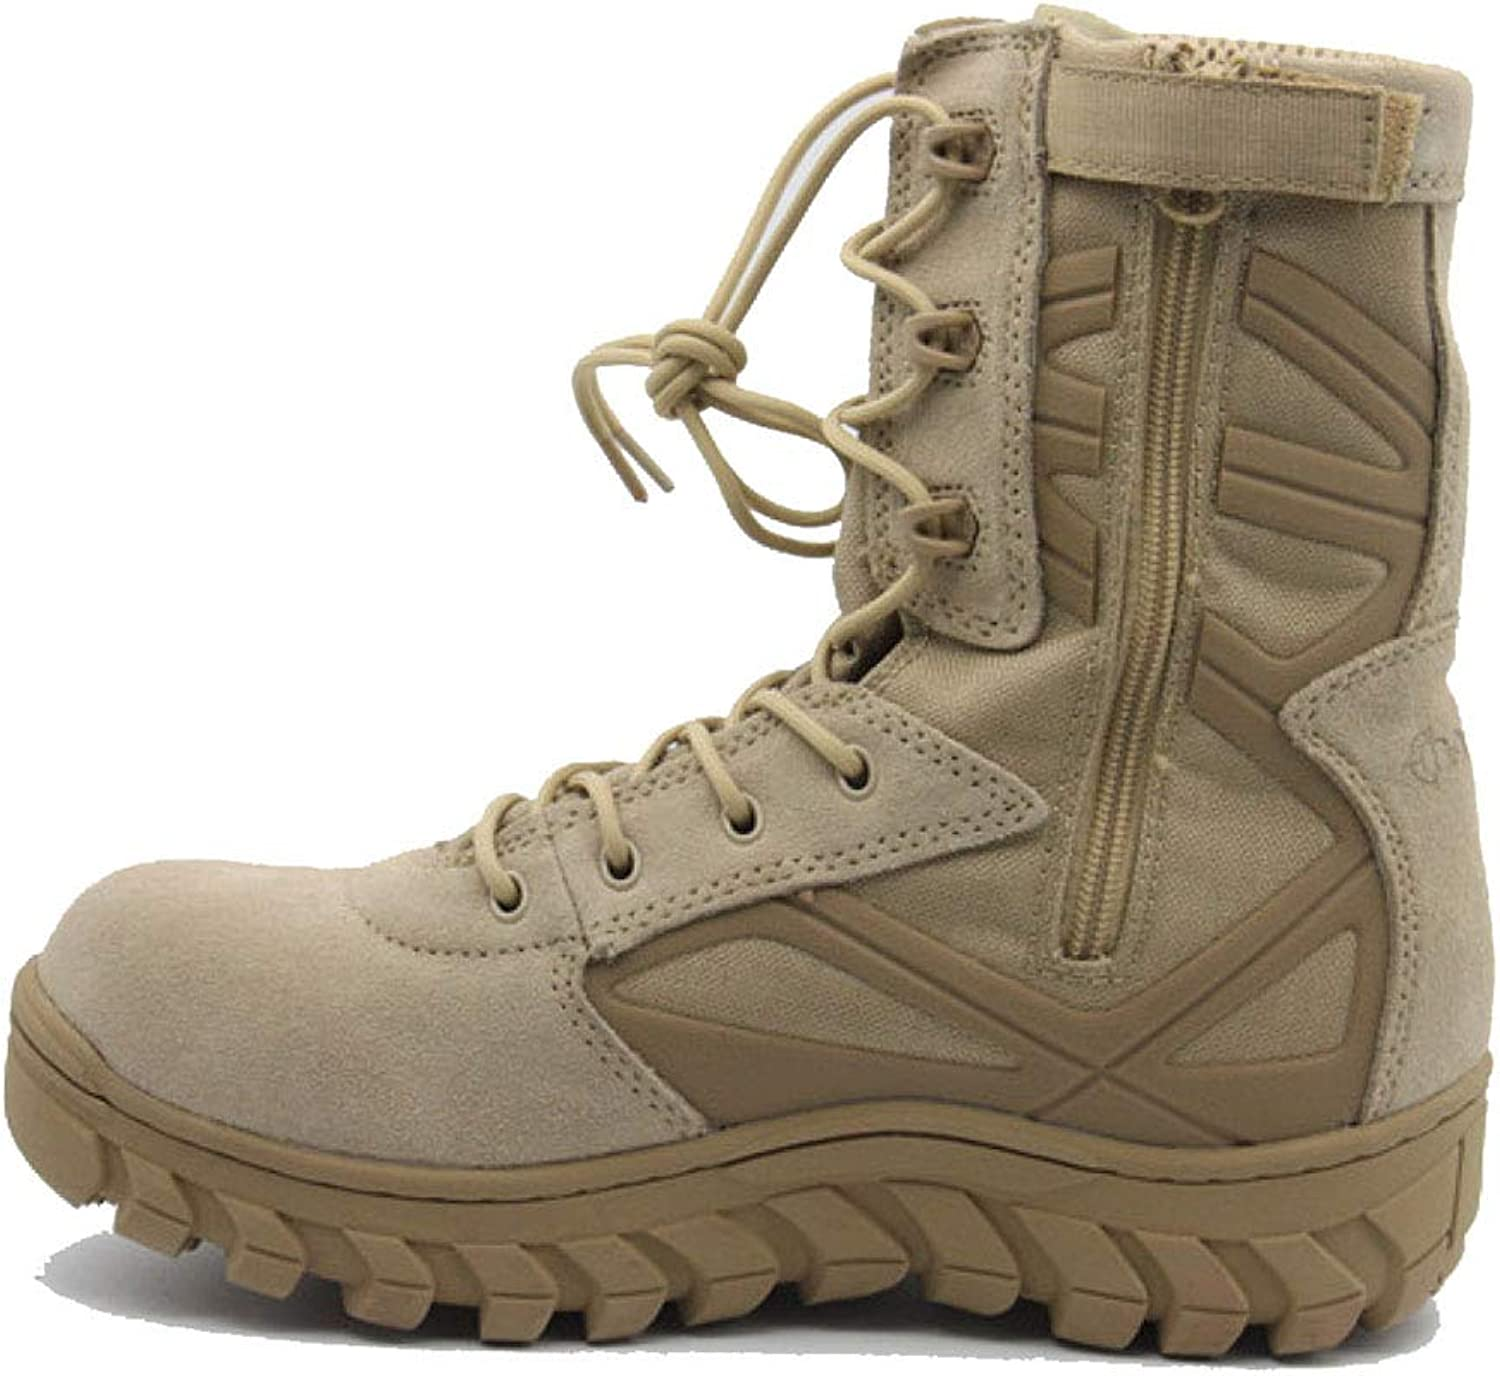 Hiking Boots Men's Outdoor Desert High-top Tactical Boots Camouflage Combat Boots